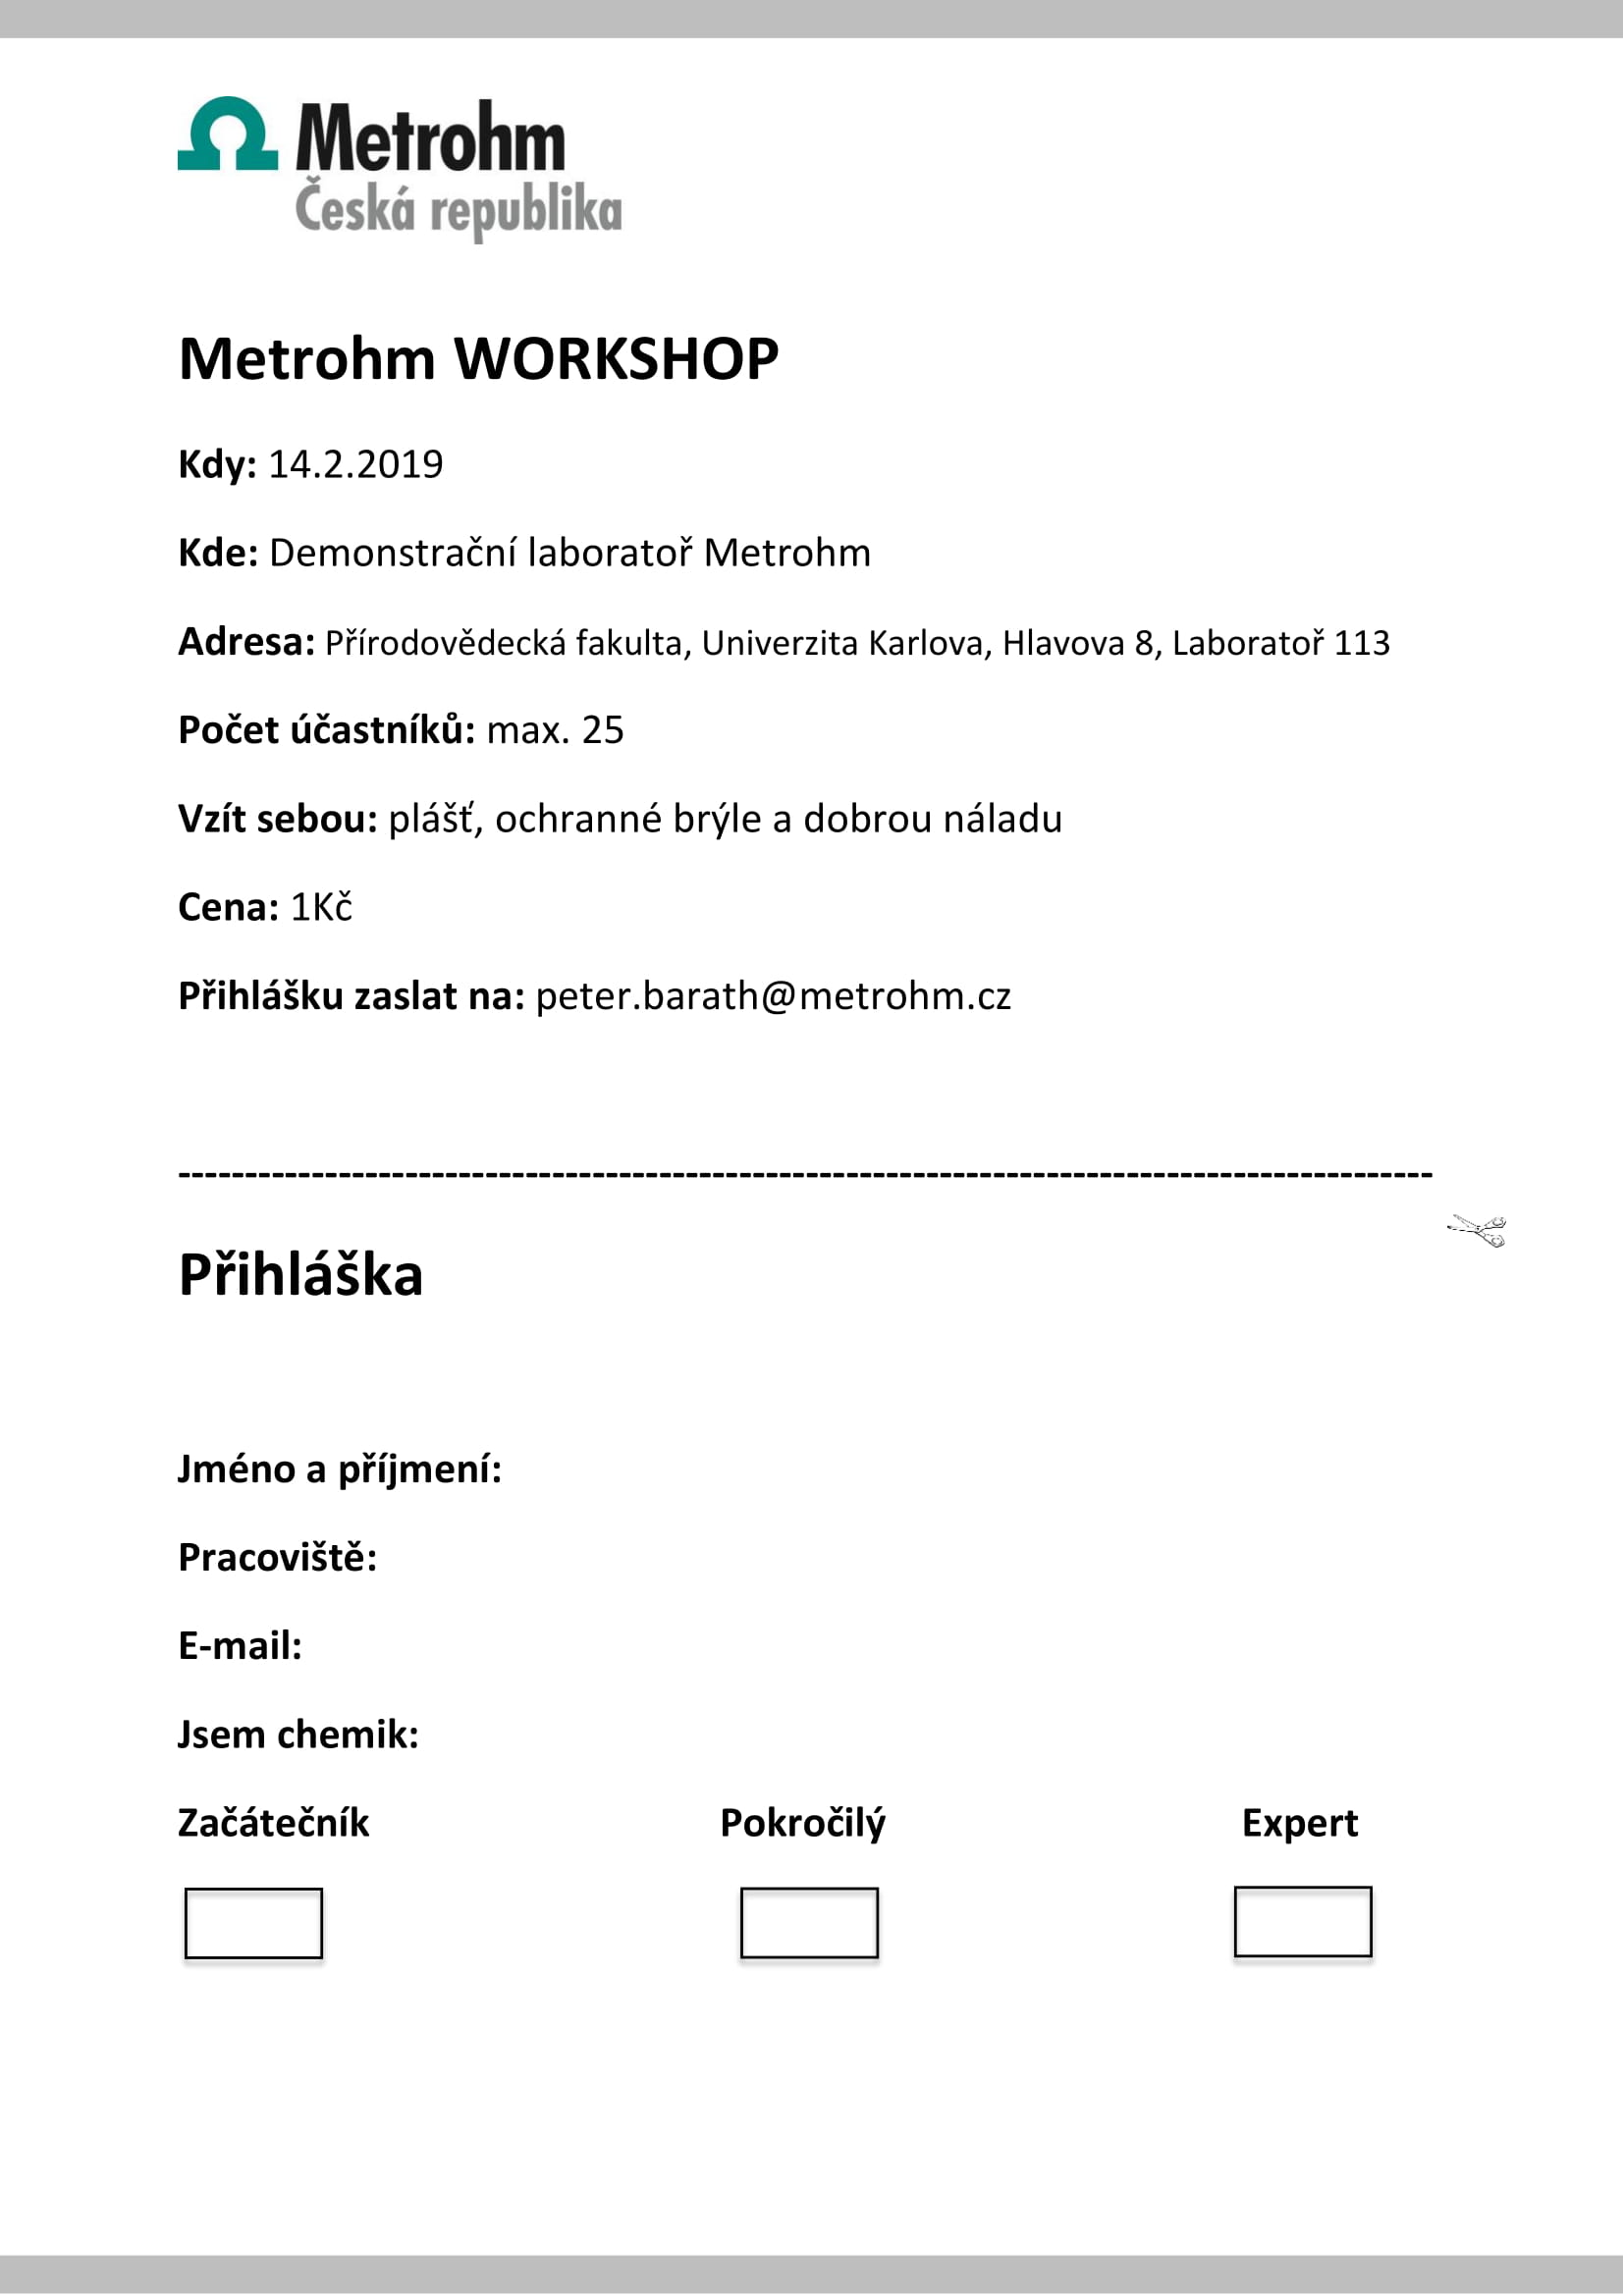 Metrohm_WORKSHOP-1.jpg